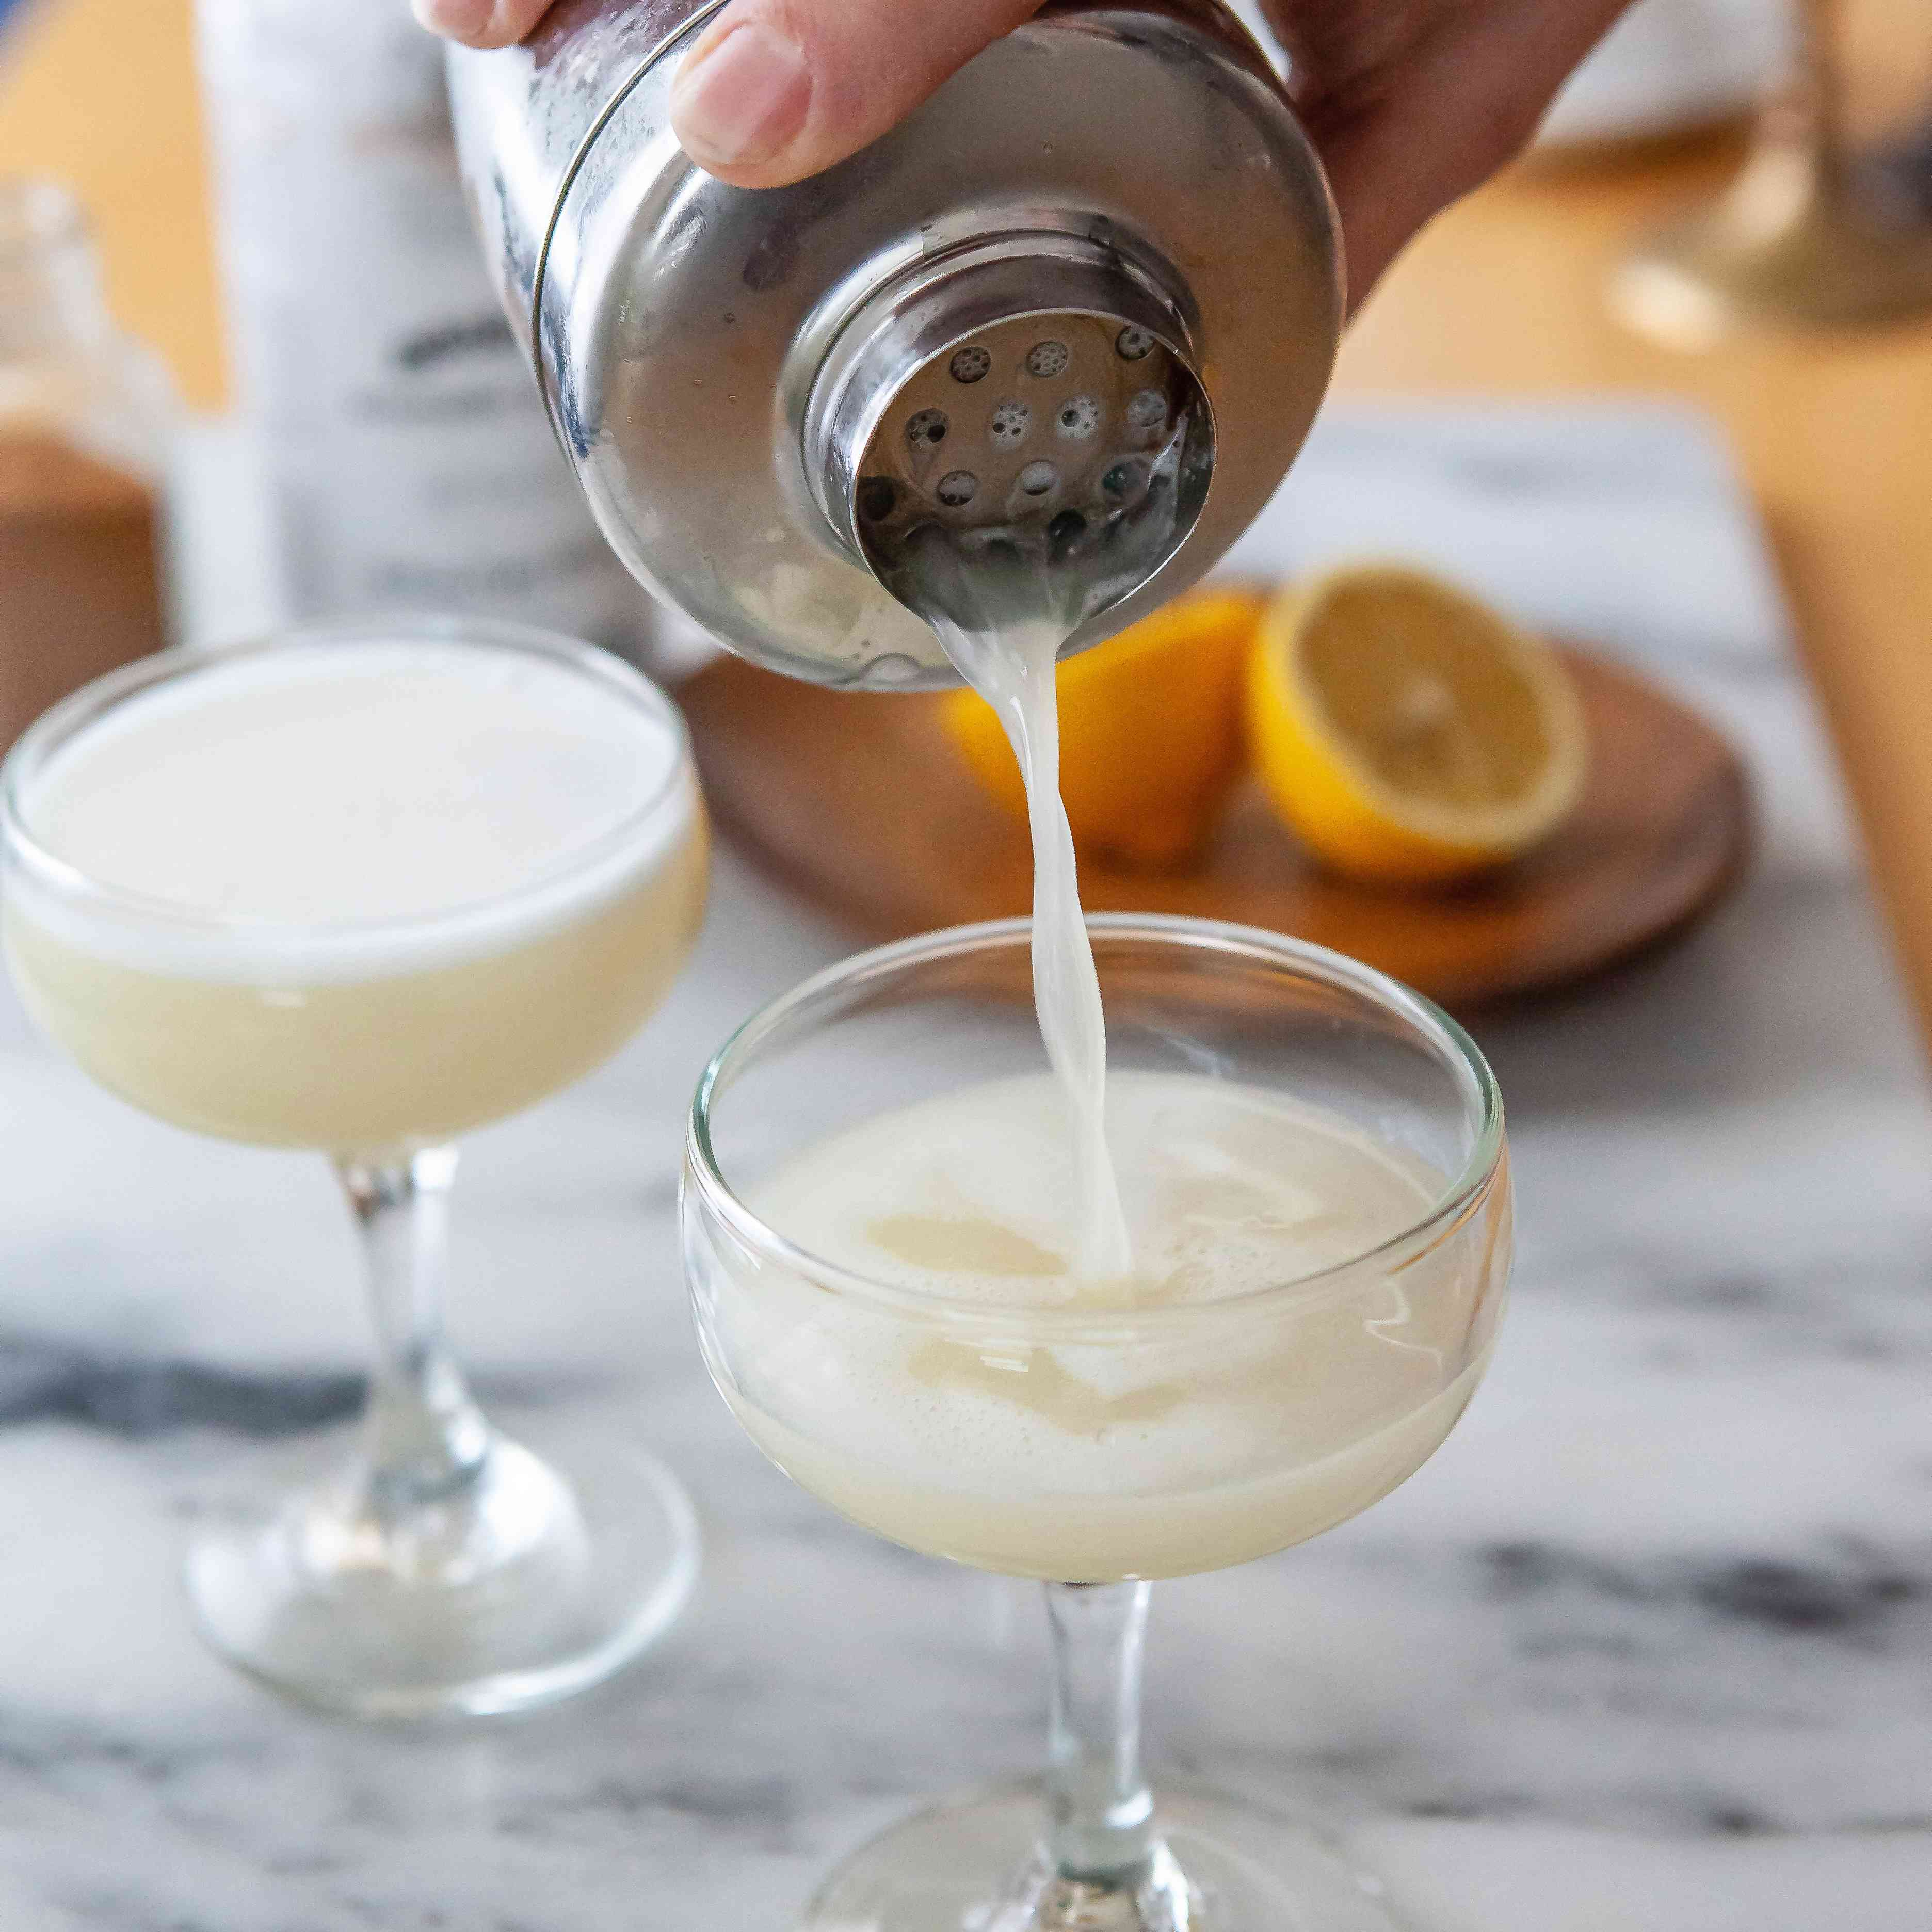 An Authentic Peruvian Pisco Sour being poured into a coupe glass.